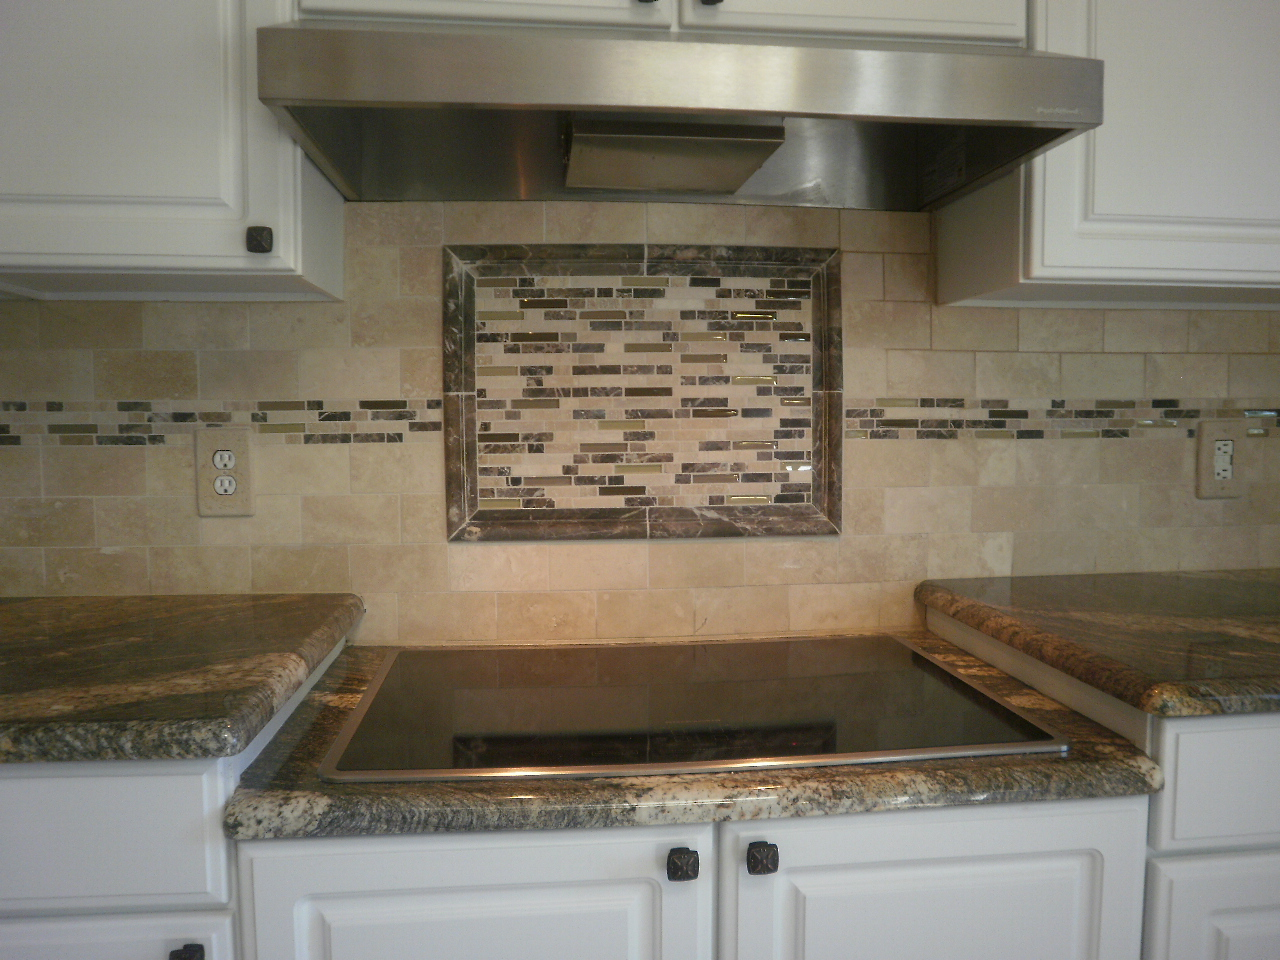 Kitchen backsplash ideas glass tile afreakatheart Kitchen backsplash ideas for small kitchens